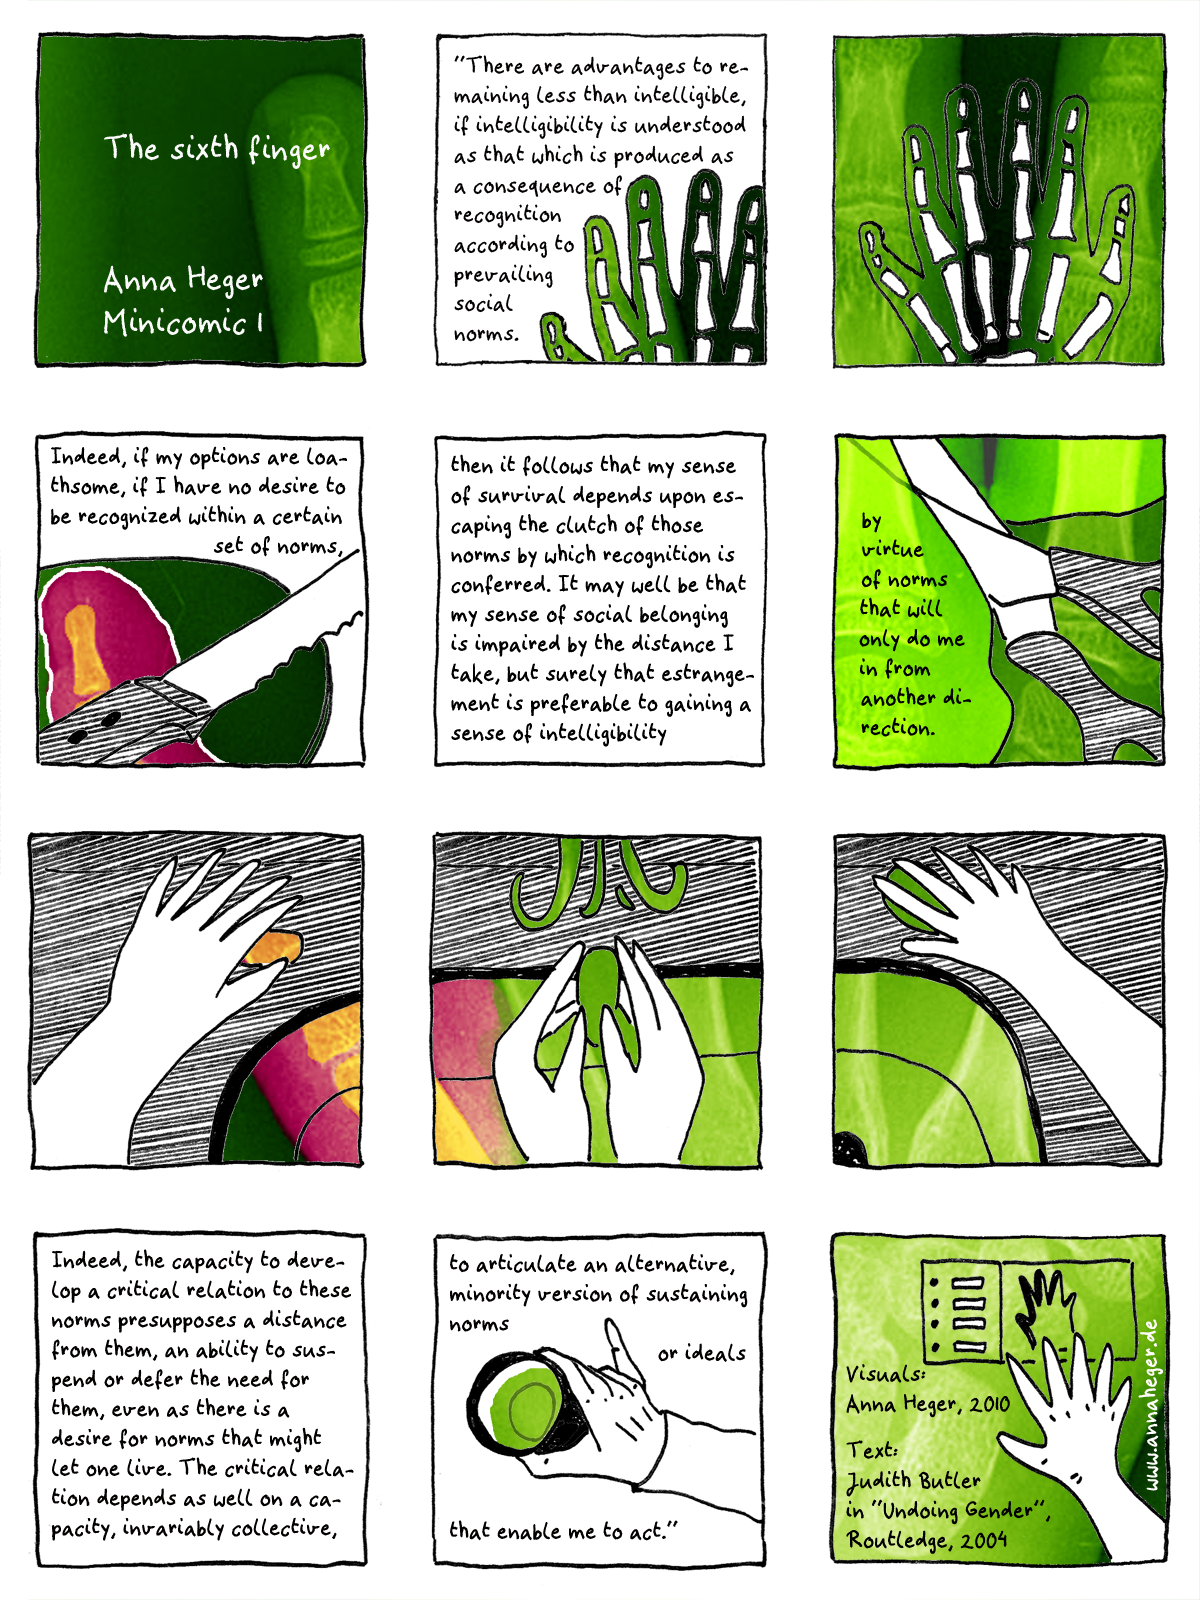 Minicomic 01 : The sixth finger, the entire comic is transcribed to plain text